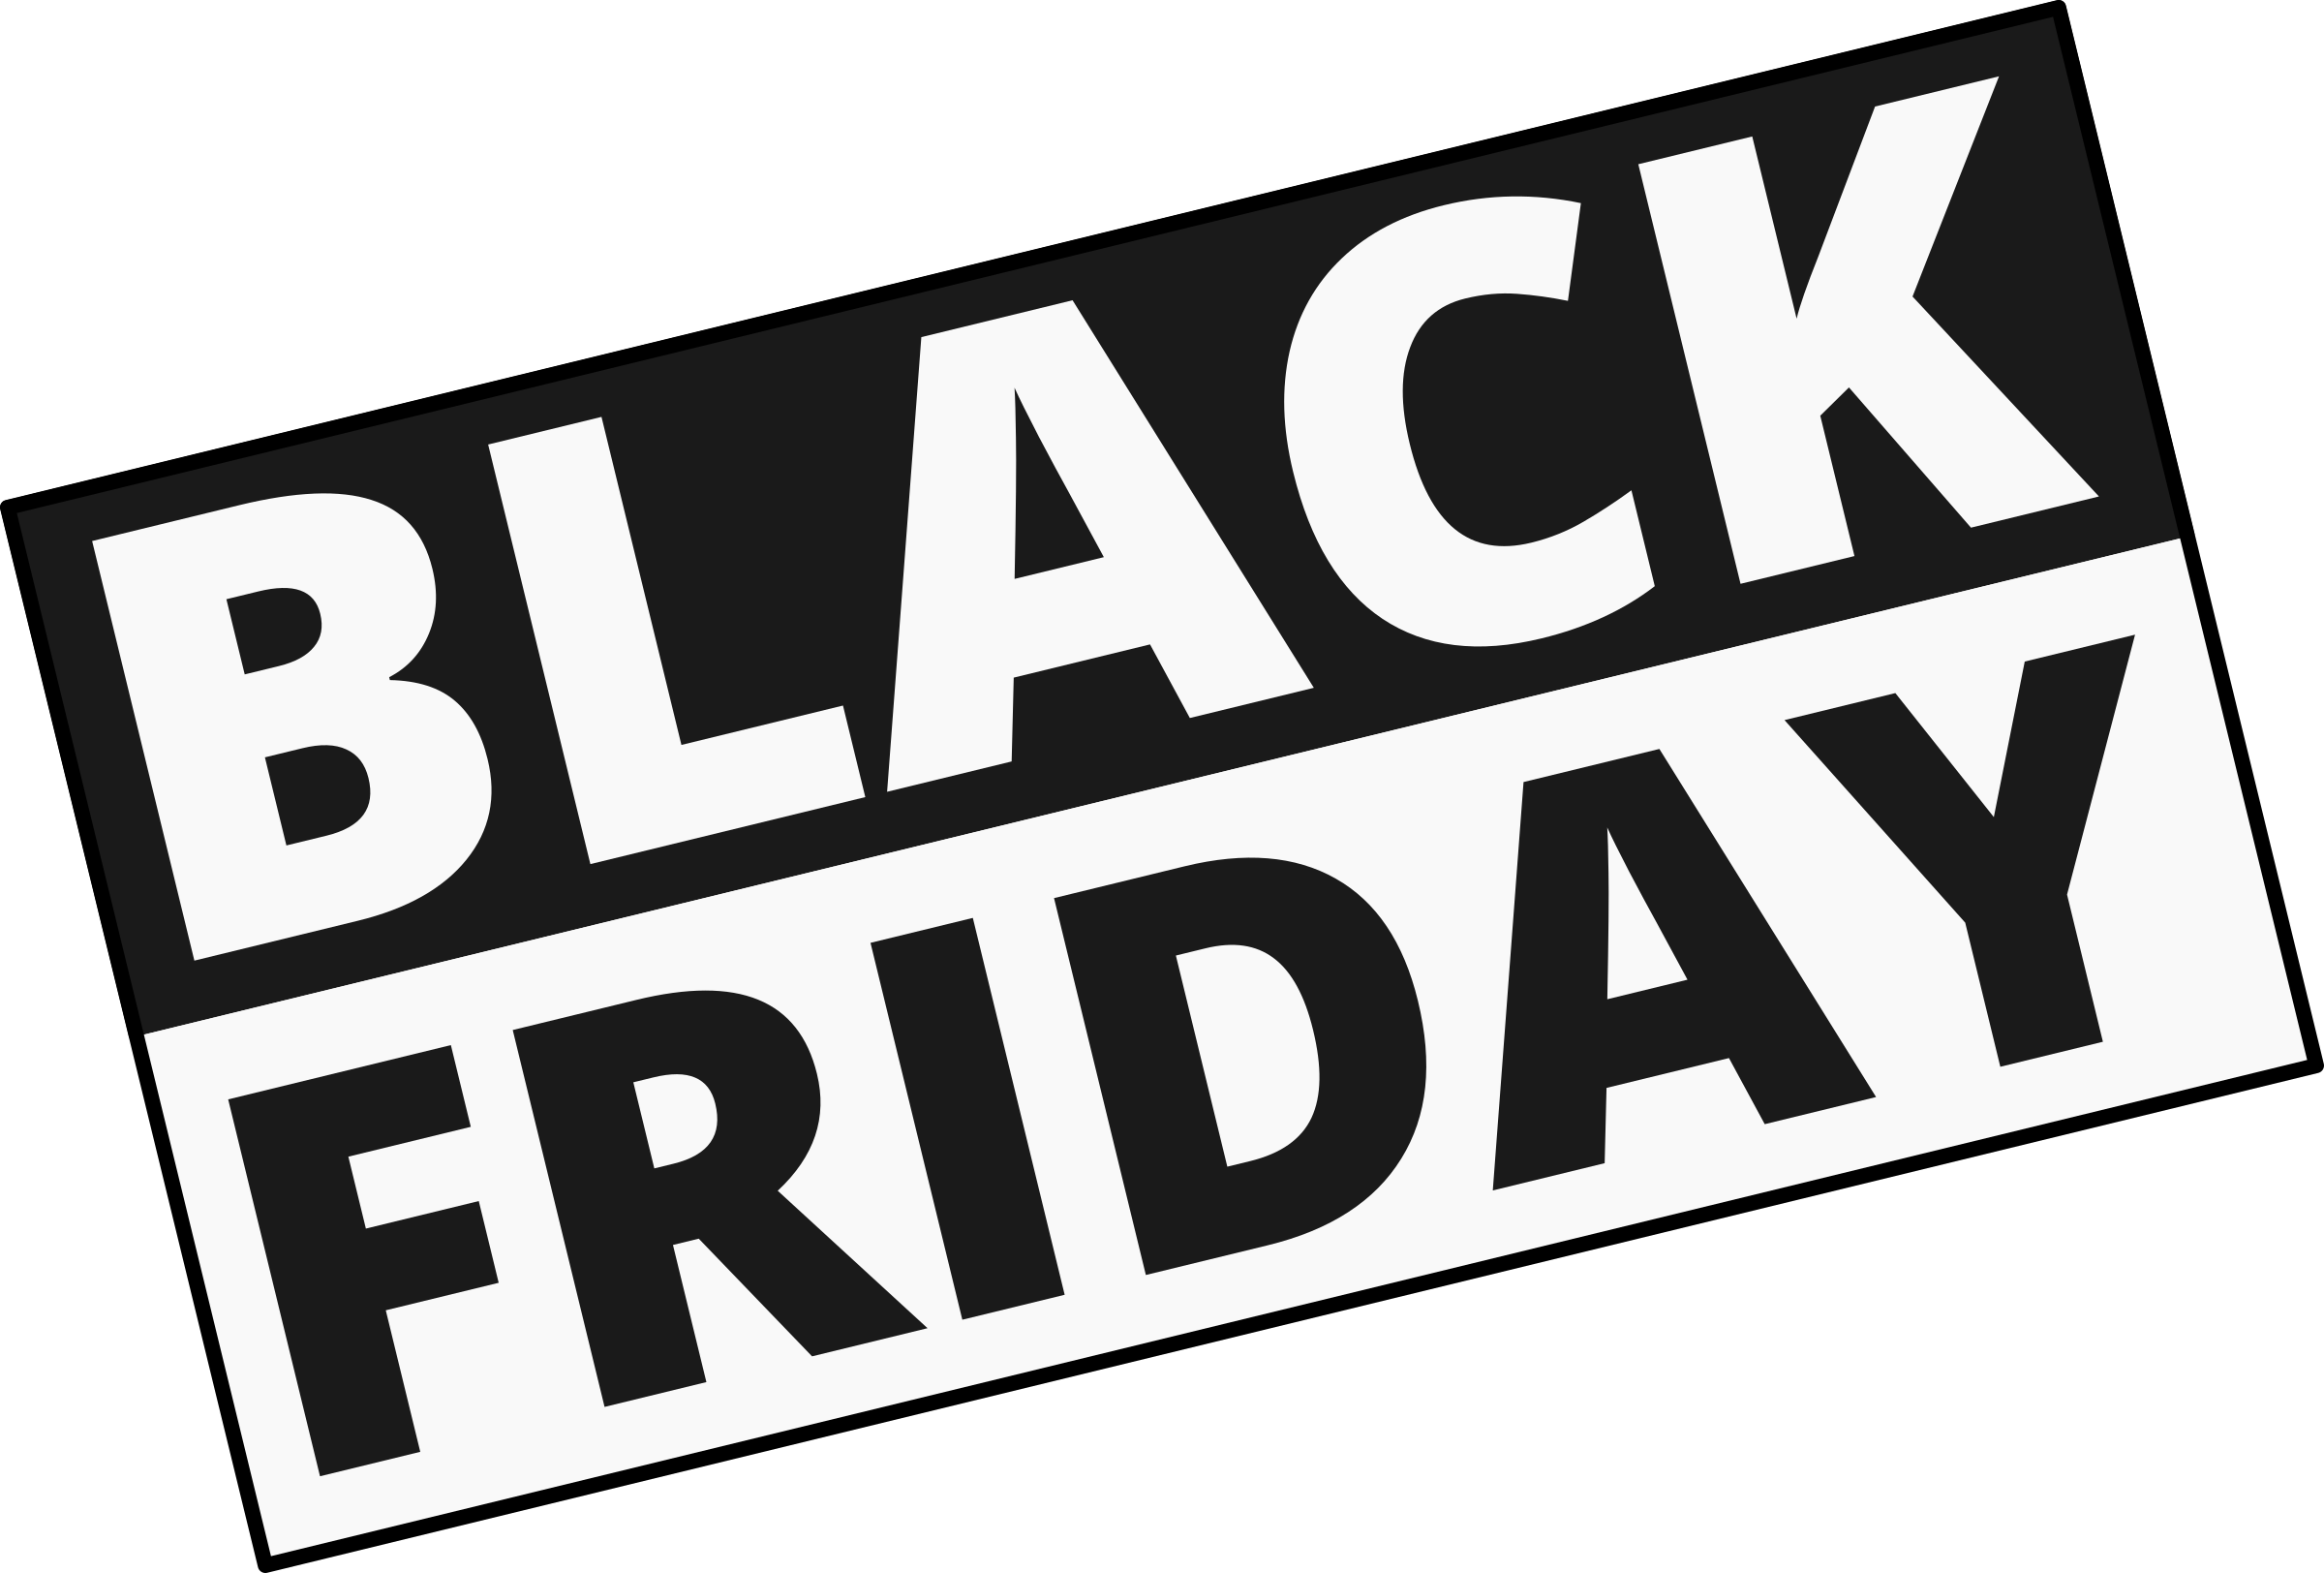 Black Friday Sign by Maiconfz